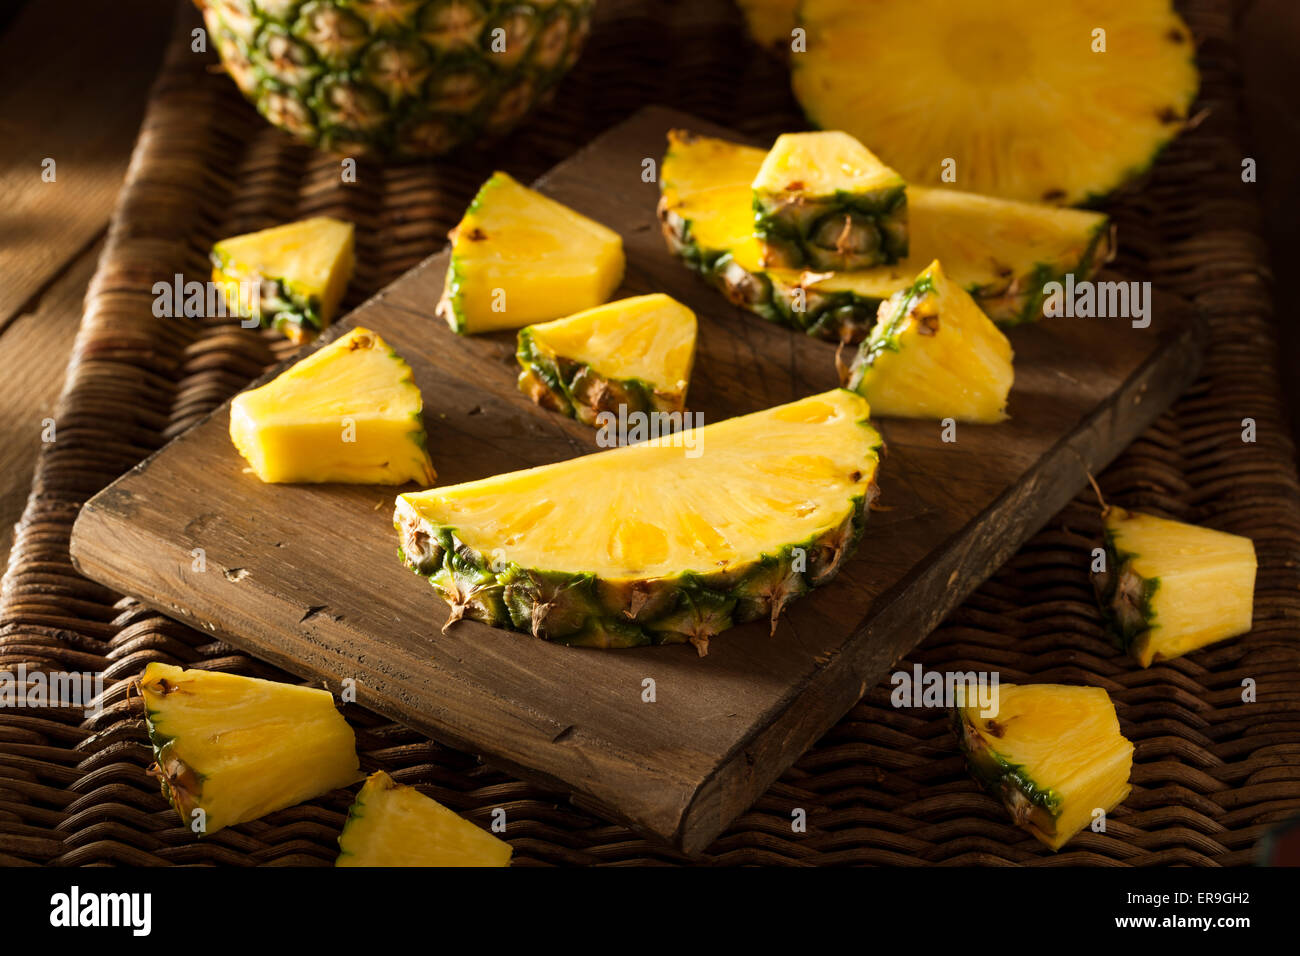 Organic Raw Yellow Pineapple Ready to Eat - Stock Image